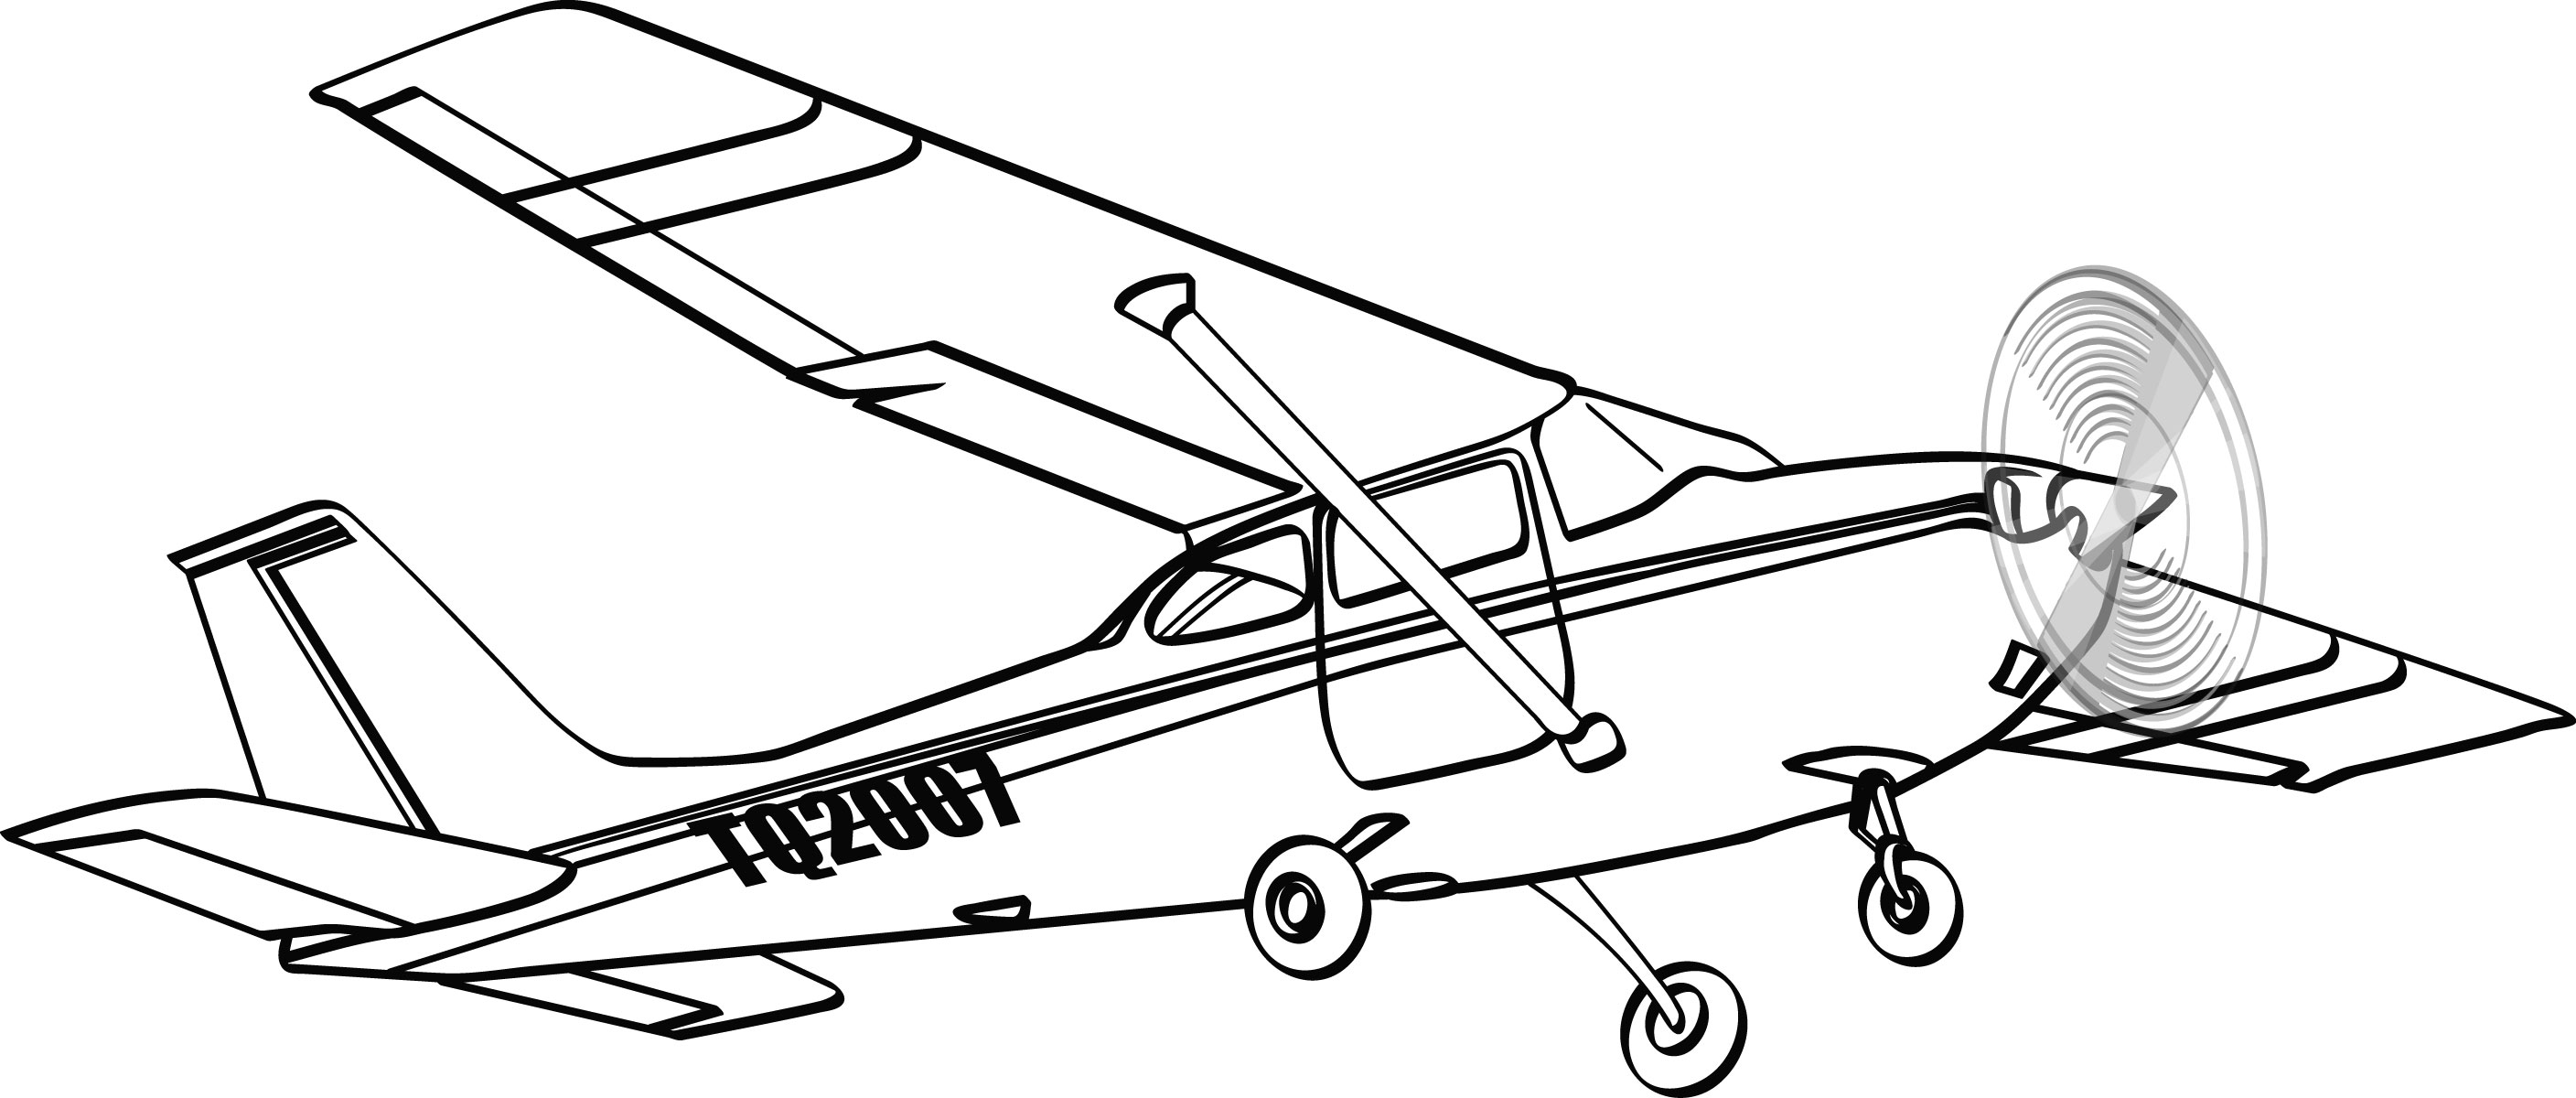 Clipart cessna 406 Clipart Collection Download this image